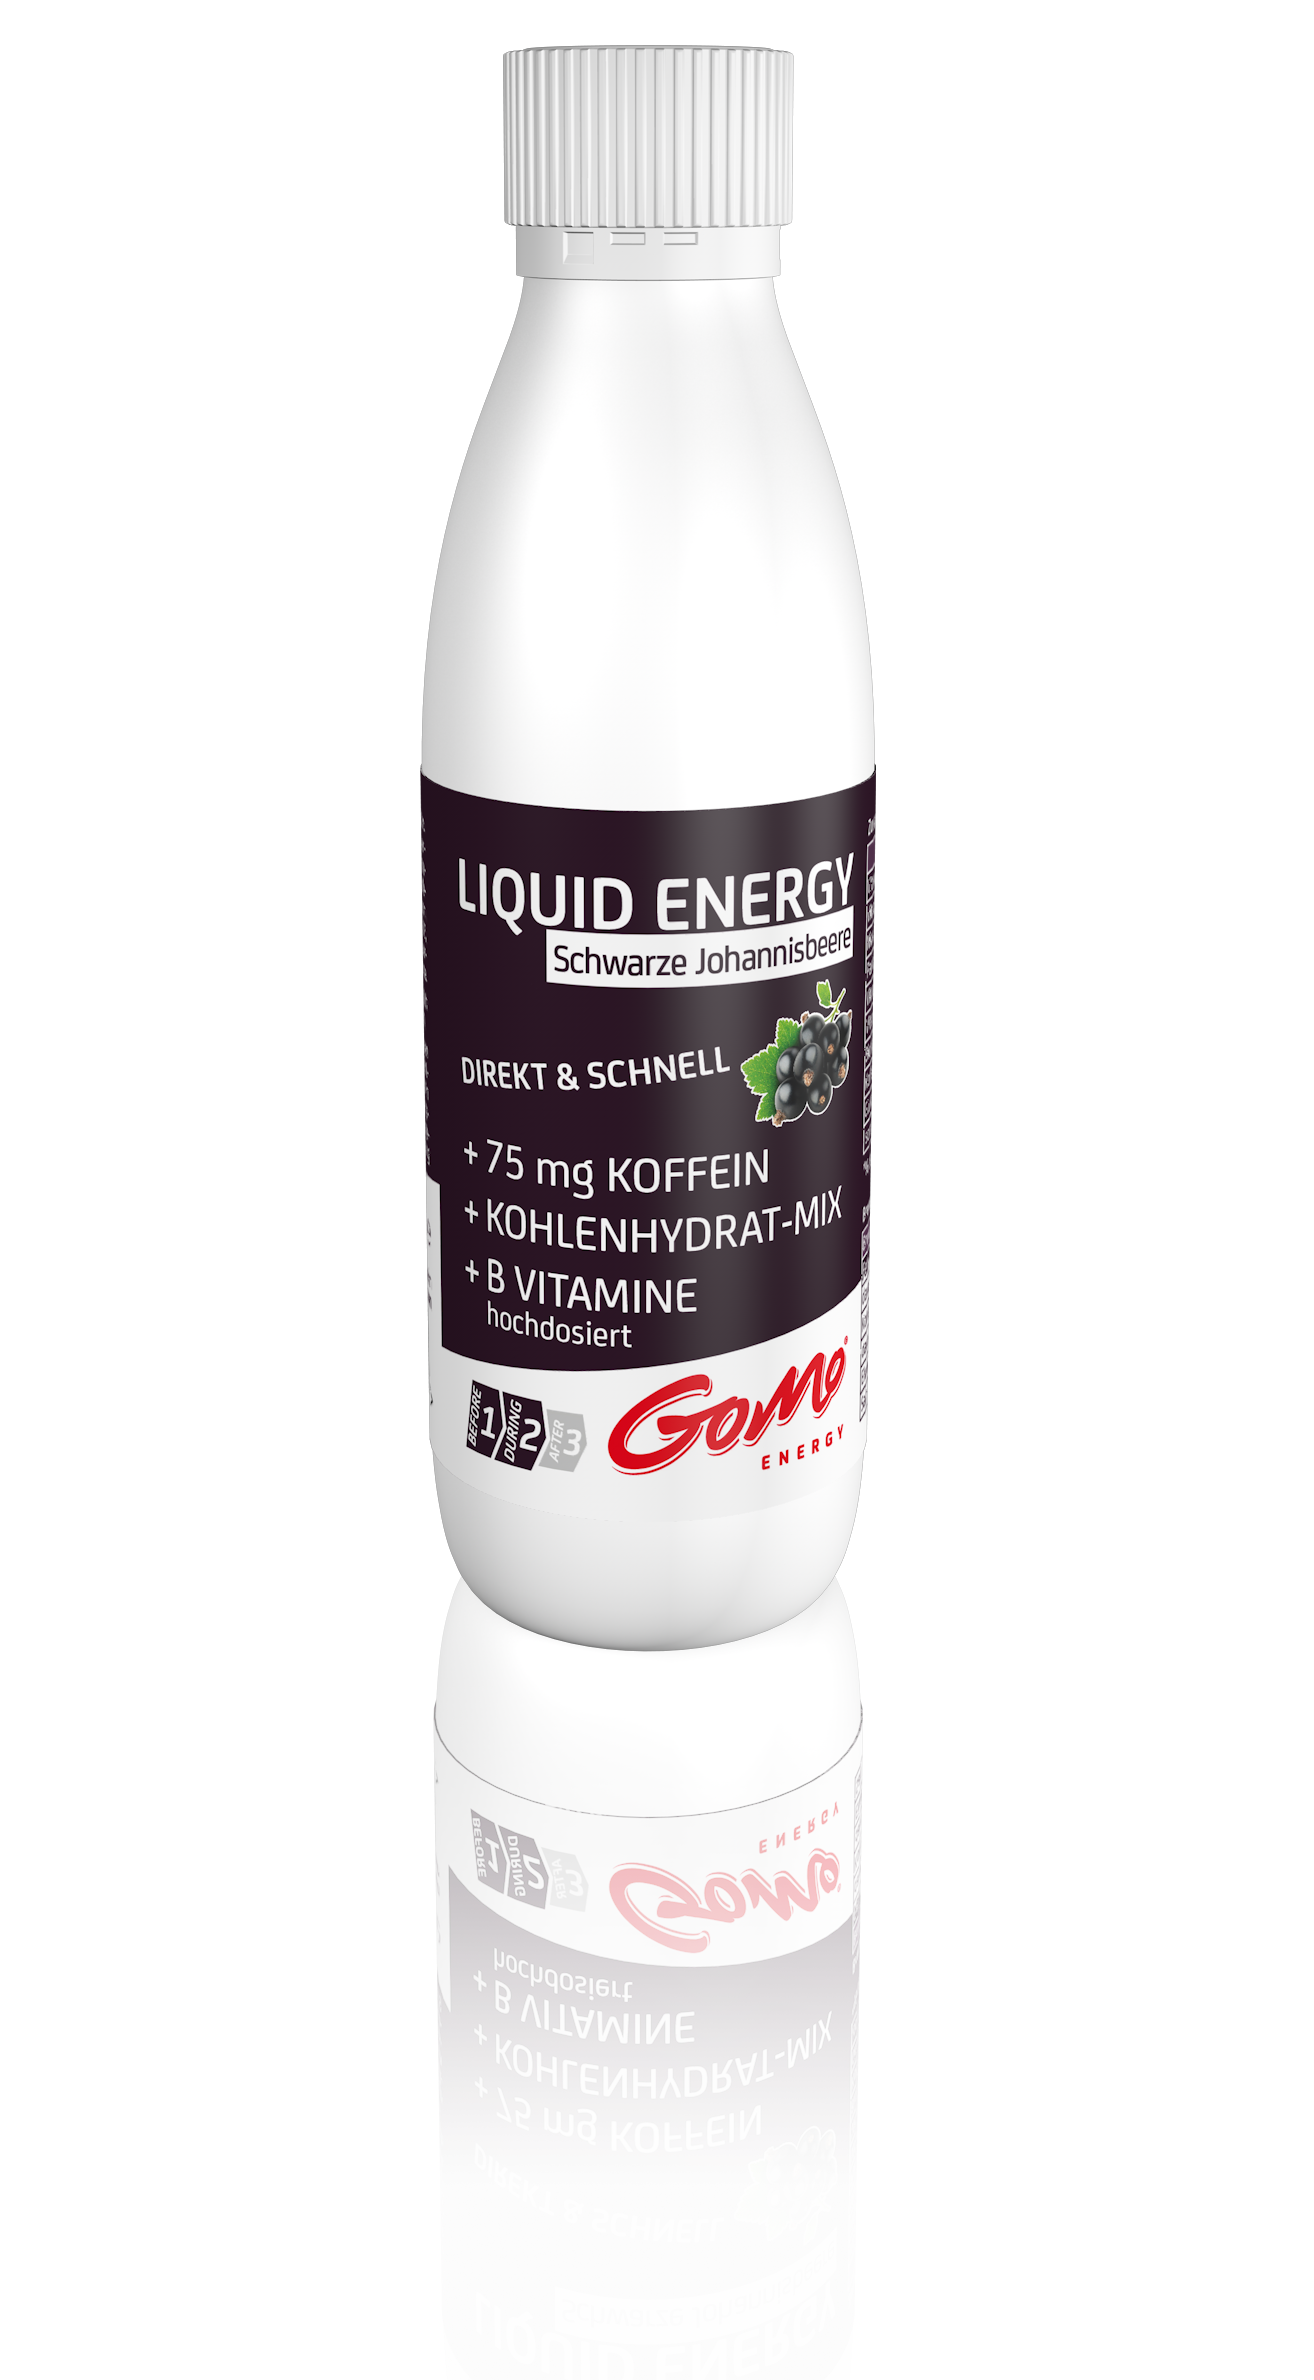 GoMo ENERGY Sports drink energy shot caffeine high doses vitamin b zinc magnesium